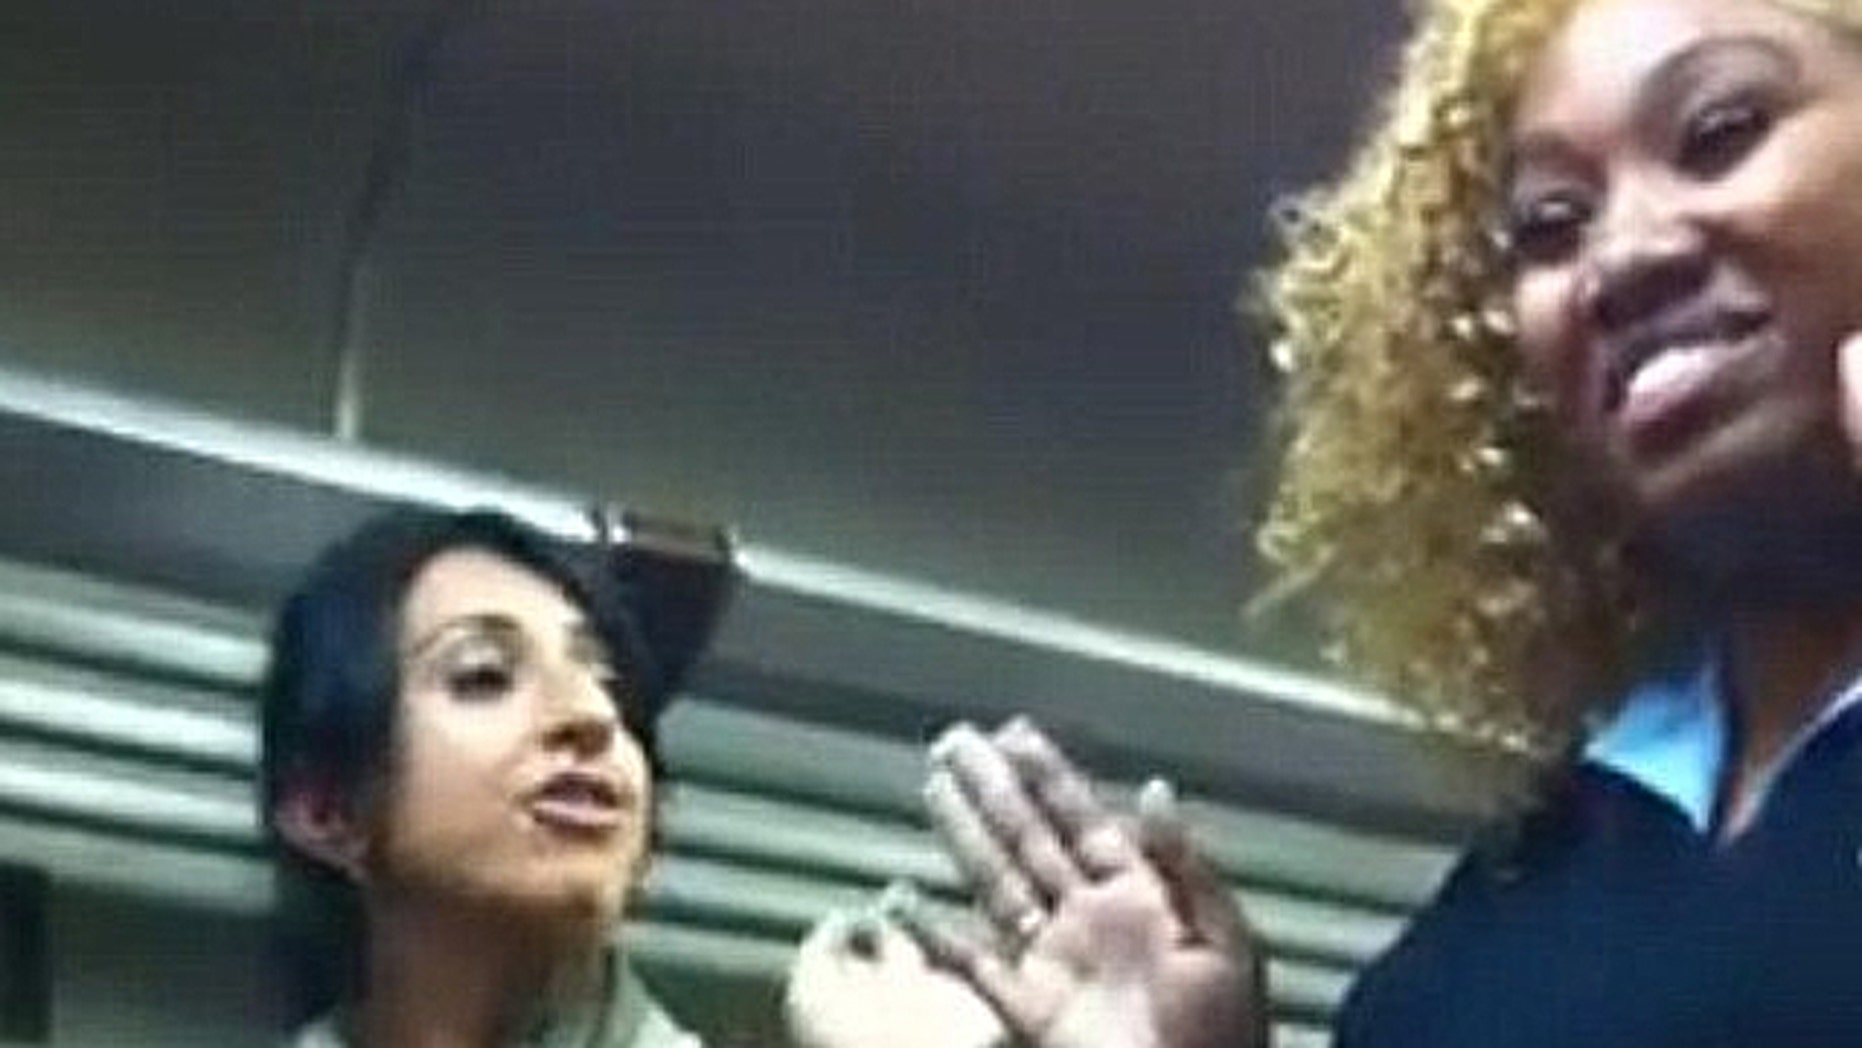 An undated, 2-minute YouTube video with more than 350,000 views as of early Friday depicts an unidentified woman, left, talking loudly as she is approached by a female conductor aboard a Metro-North train in New York. (YouTube.com)